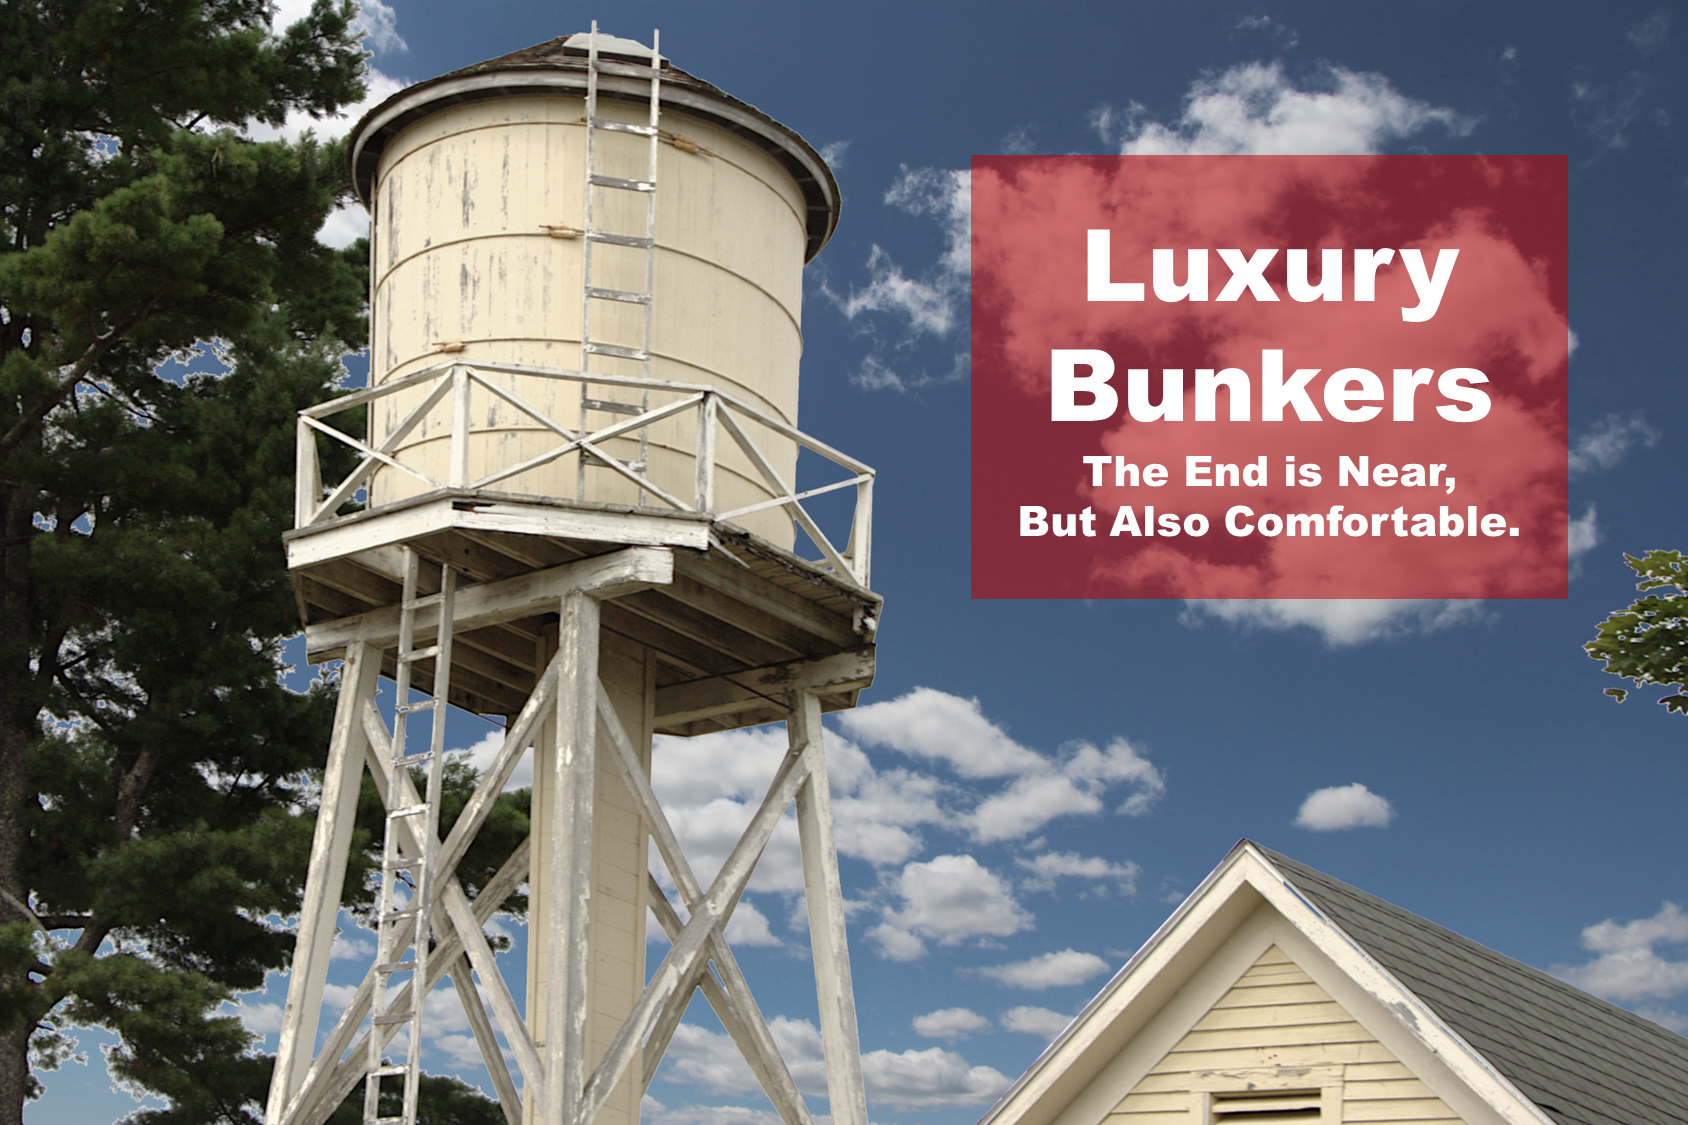 2019-09-04 Luxury Bunkers